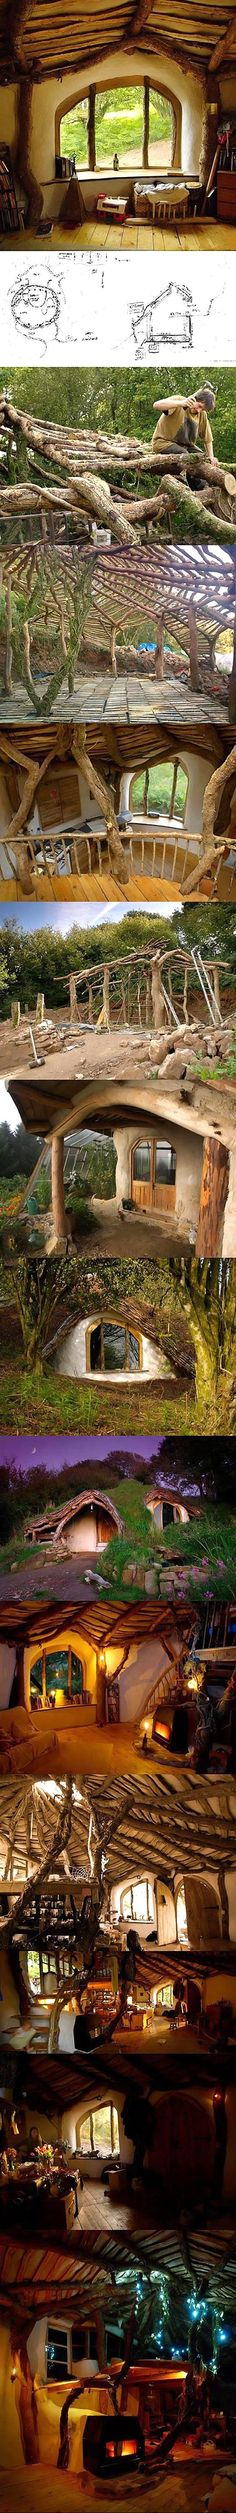 Here's How To Build A Hobbit House